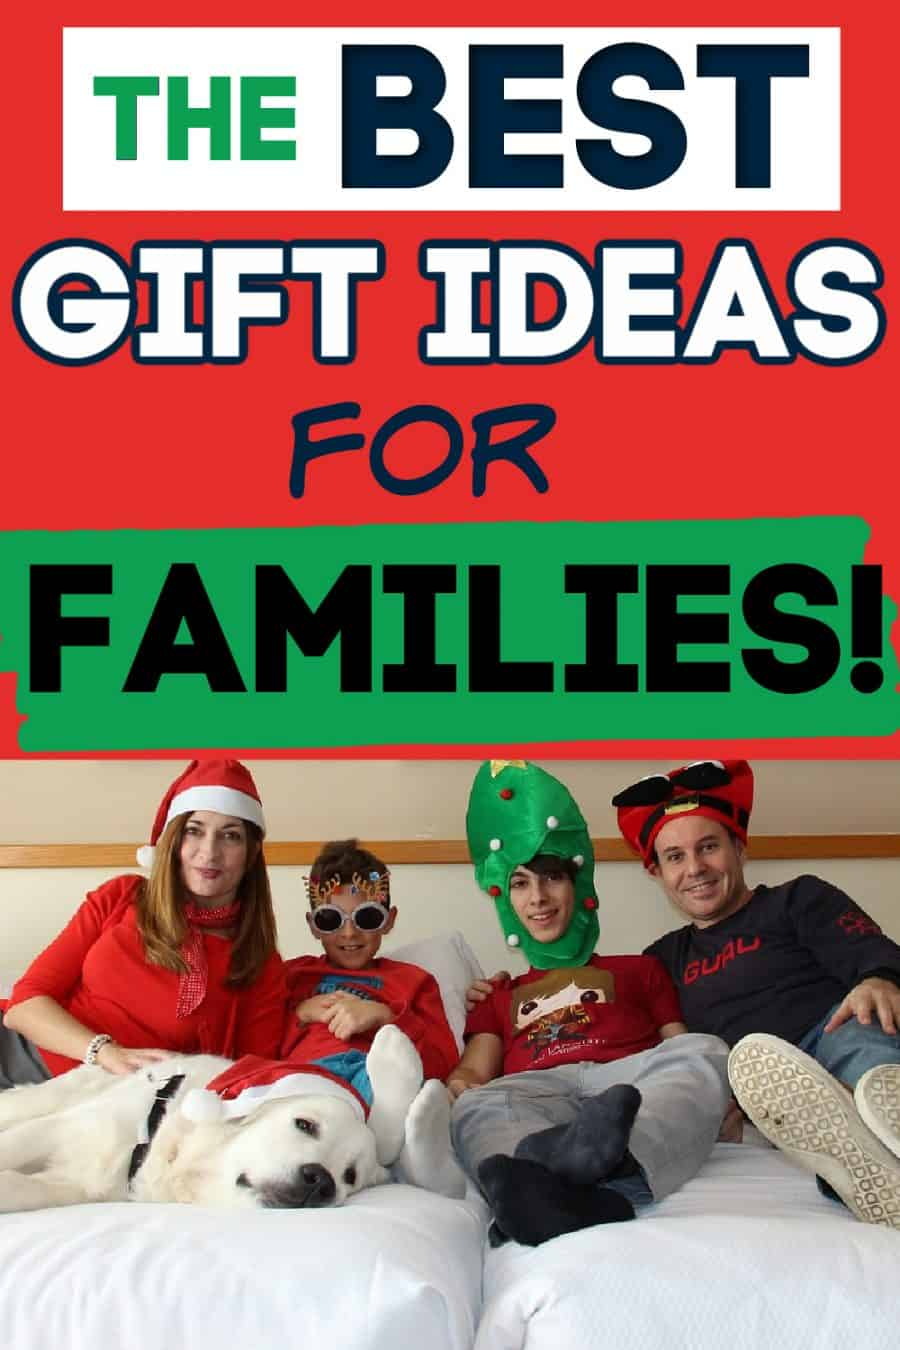 family - Best Gift Ideas For The Family (Family Gifts!)